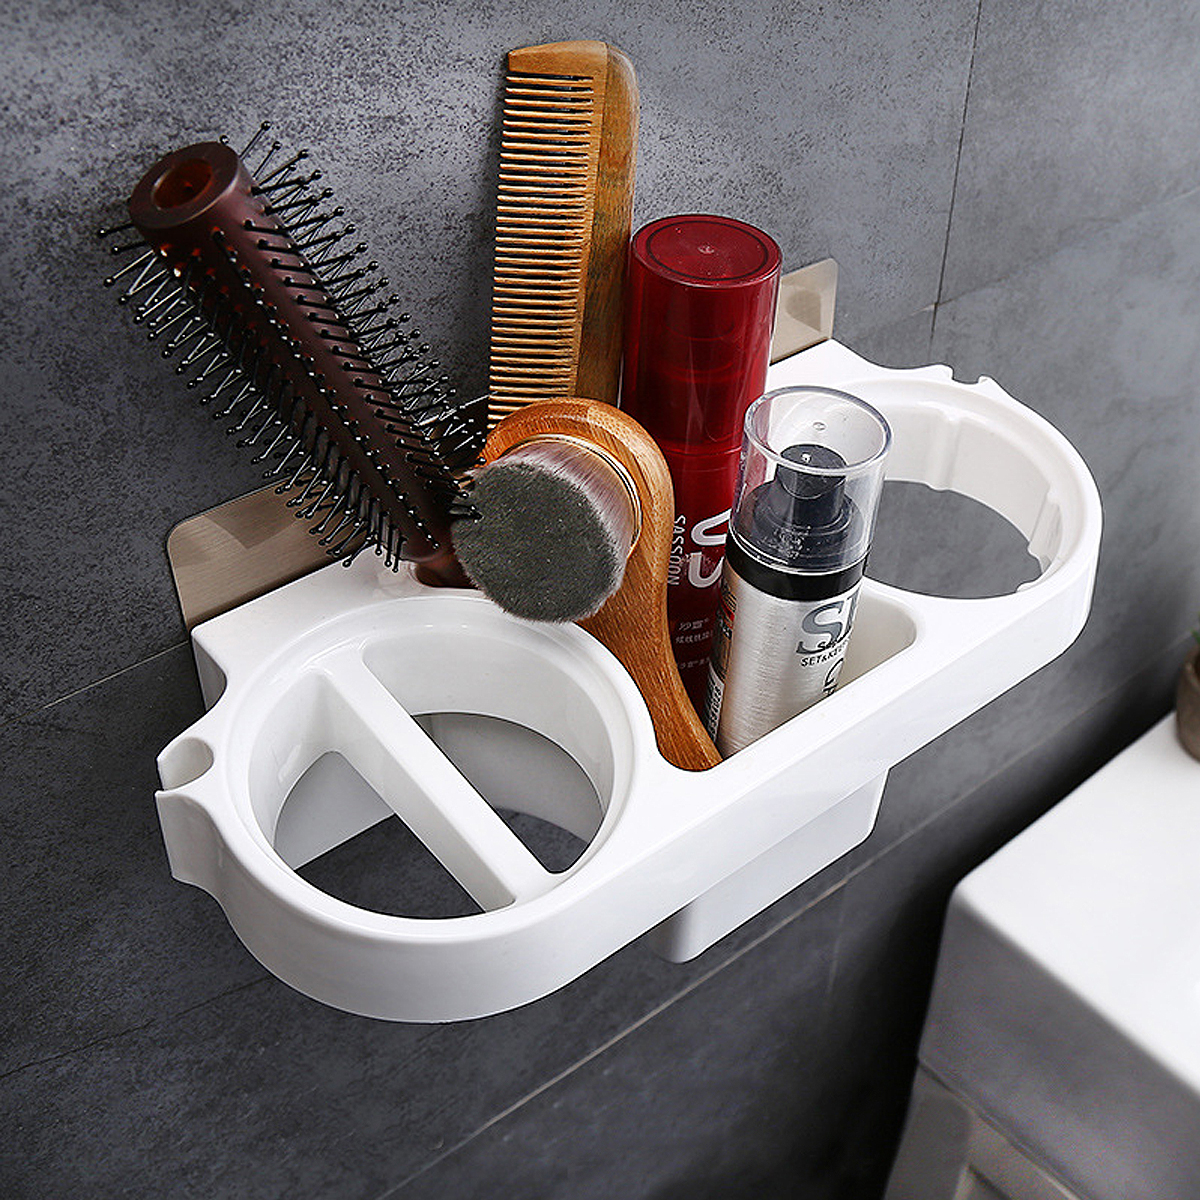 Hair Dryer Rack Storage Organizer Comb Holder Bathroom Wall Mounted Stand Set US